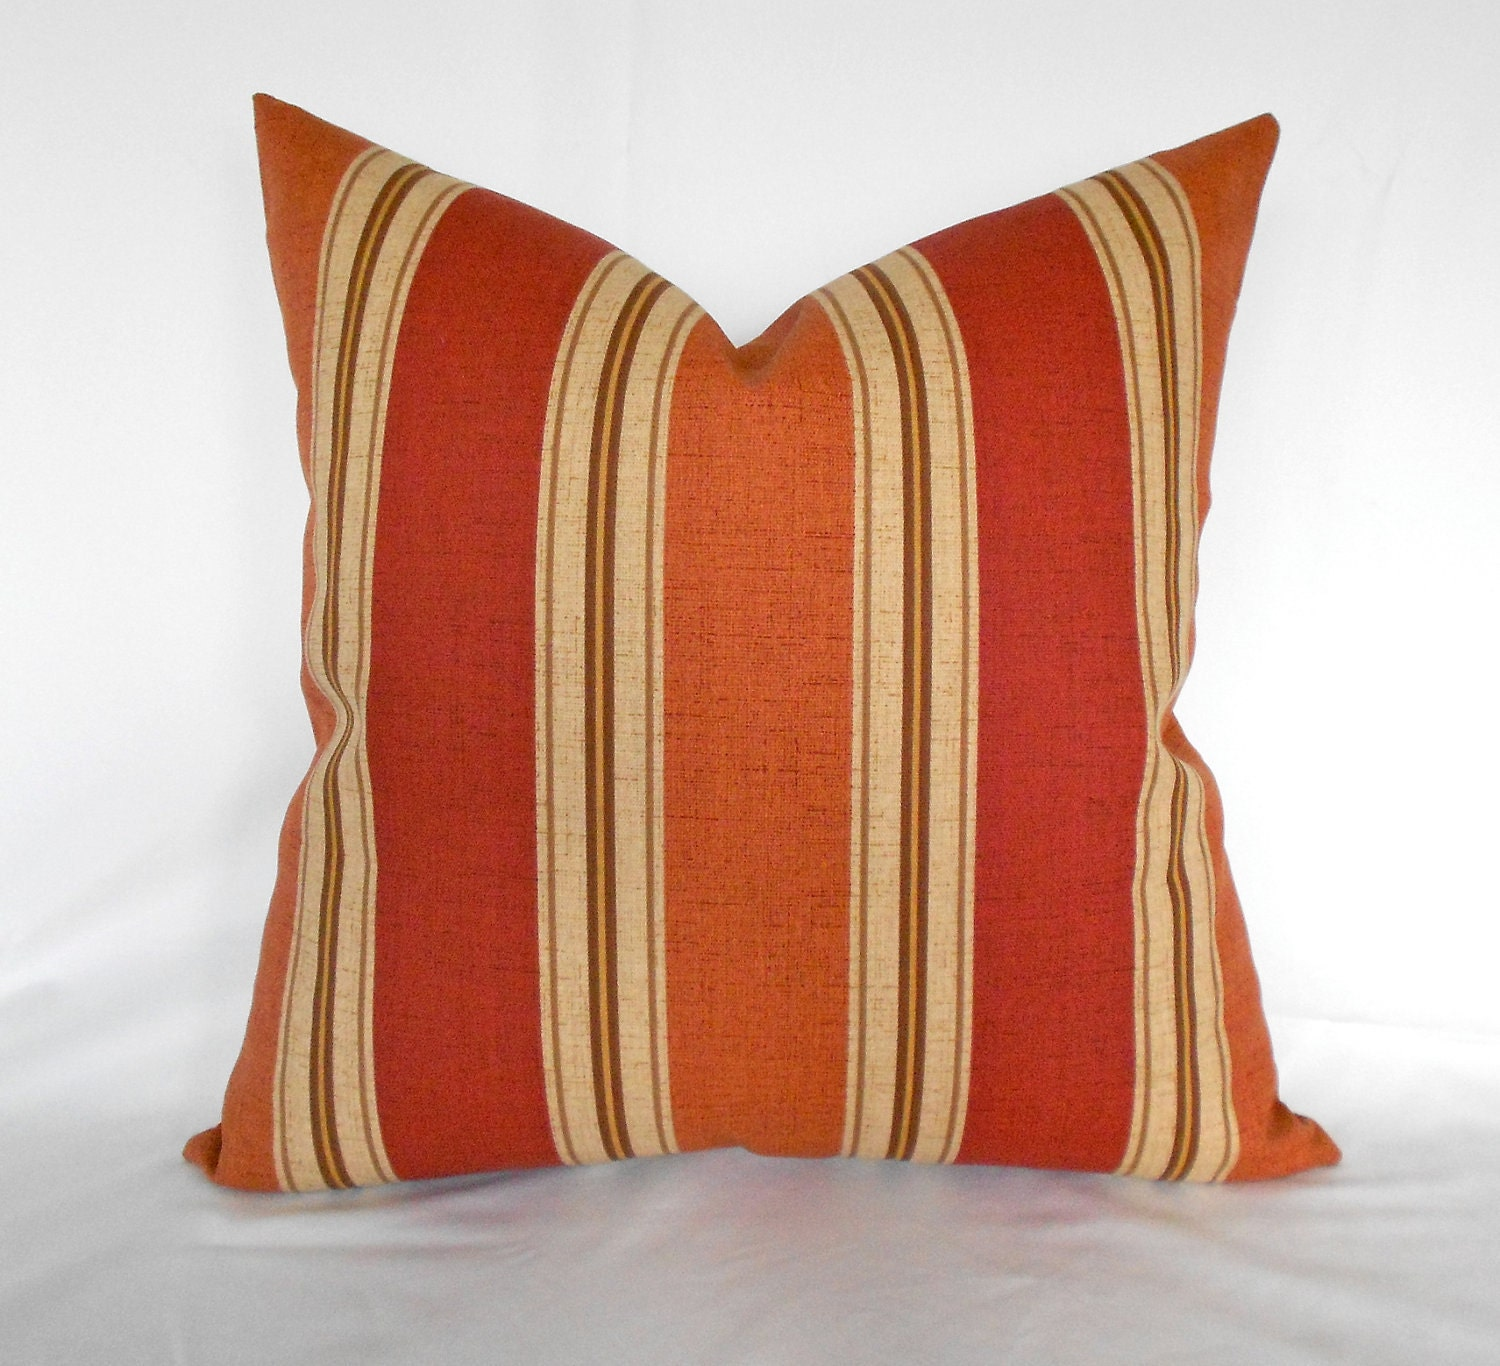 Outdoor Throw Pillows At Target : Orange Decorative Pillows Target Interior Home Design Home Decorating